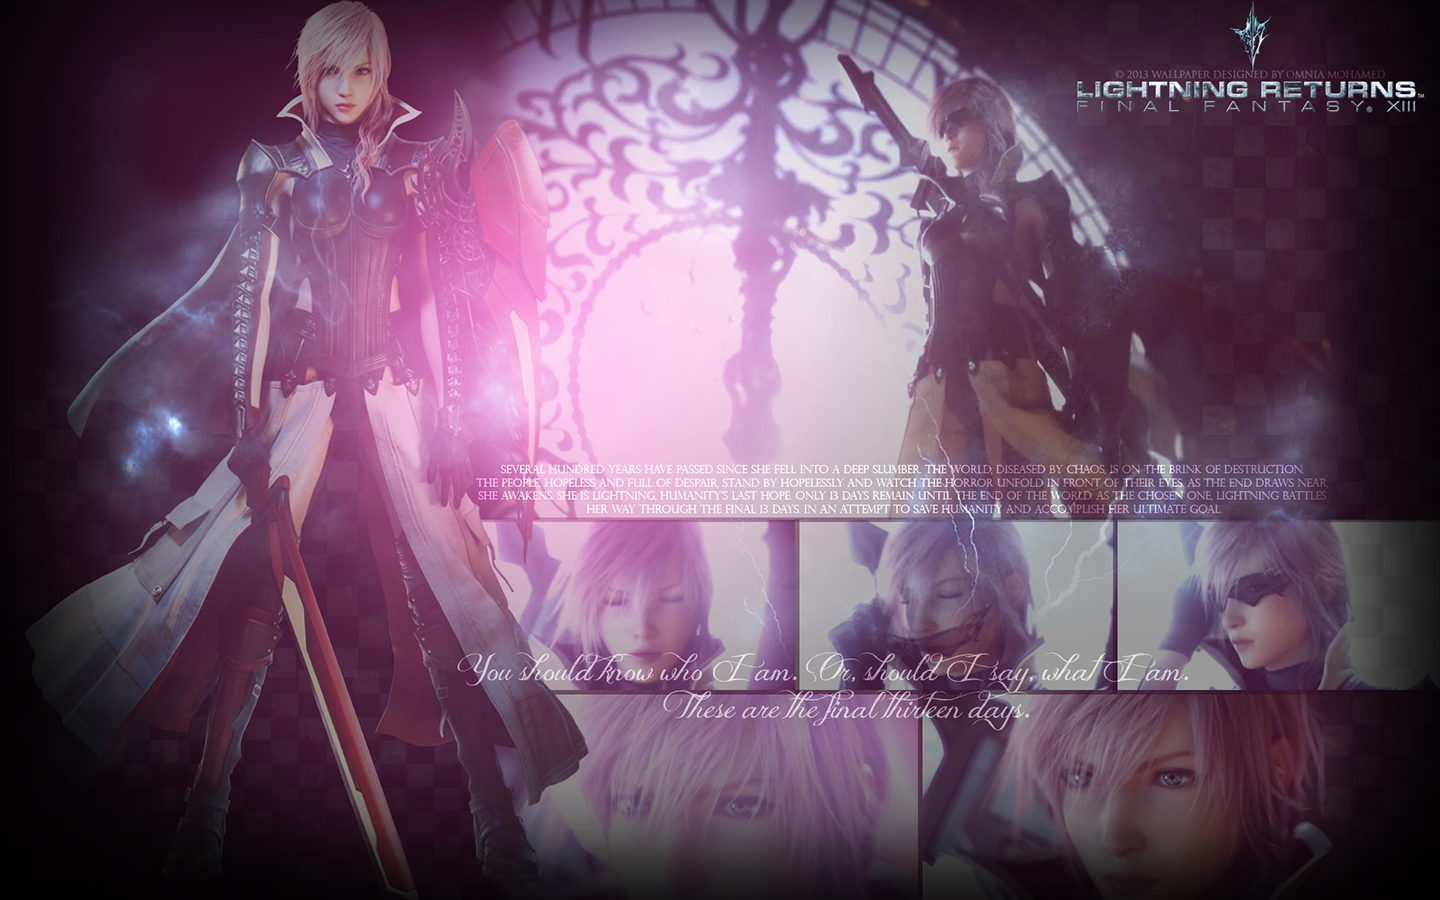 Lightning returns final fantasy xiii images lightning returns lightning returns final fantasy xiii images lightning returns wallpaper hd wallpaper and background photos voltagebd Image collections